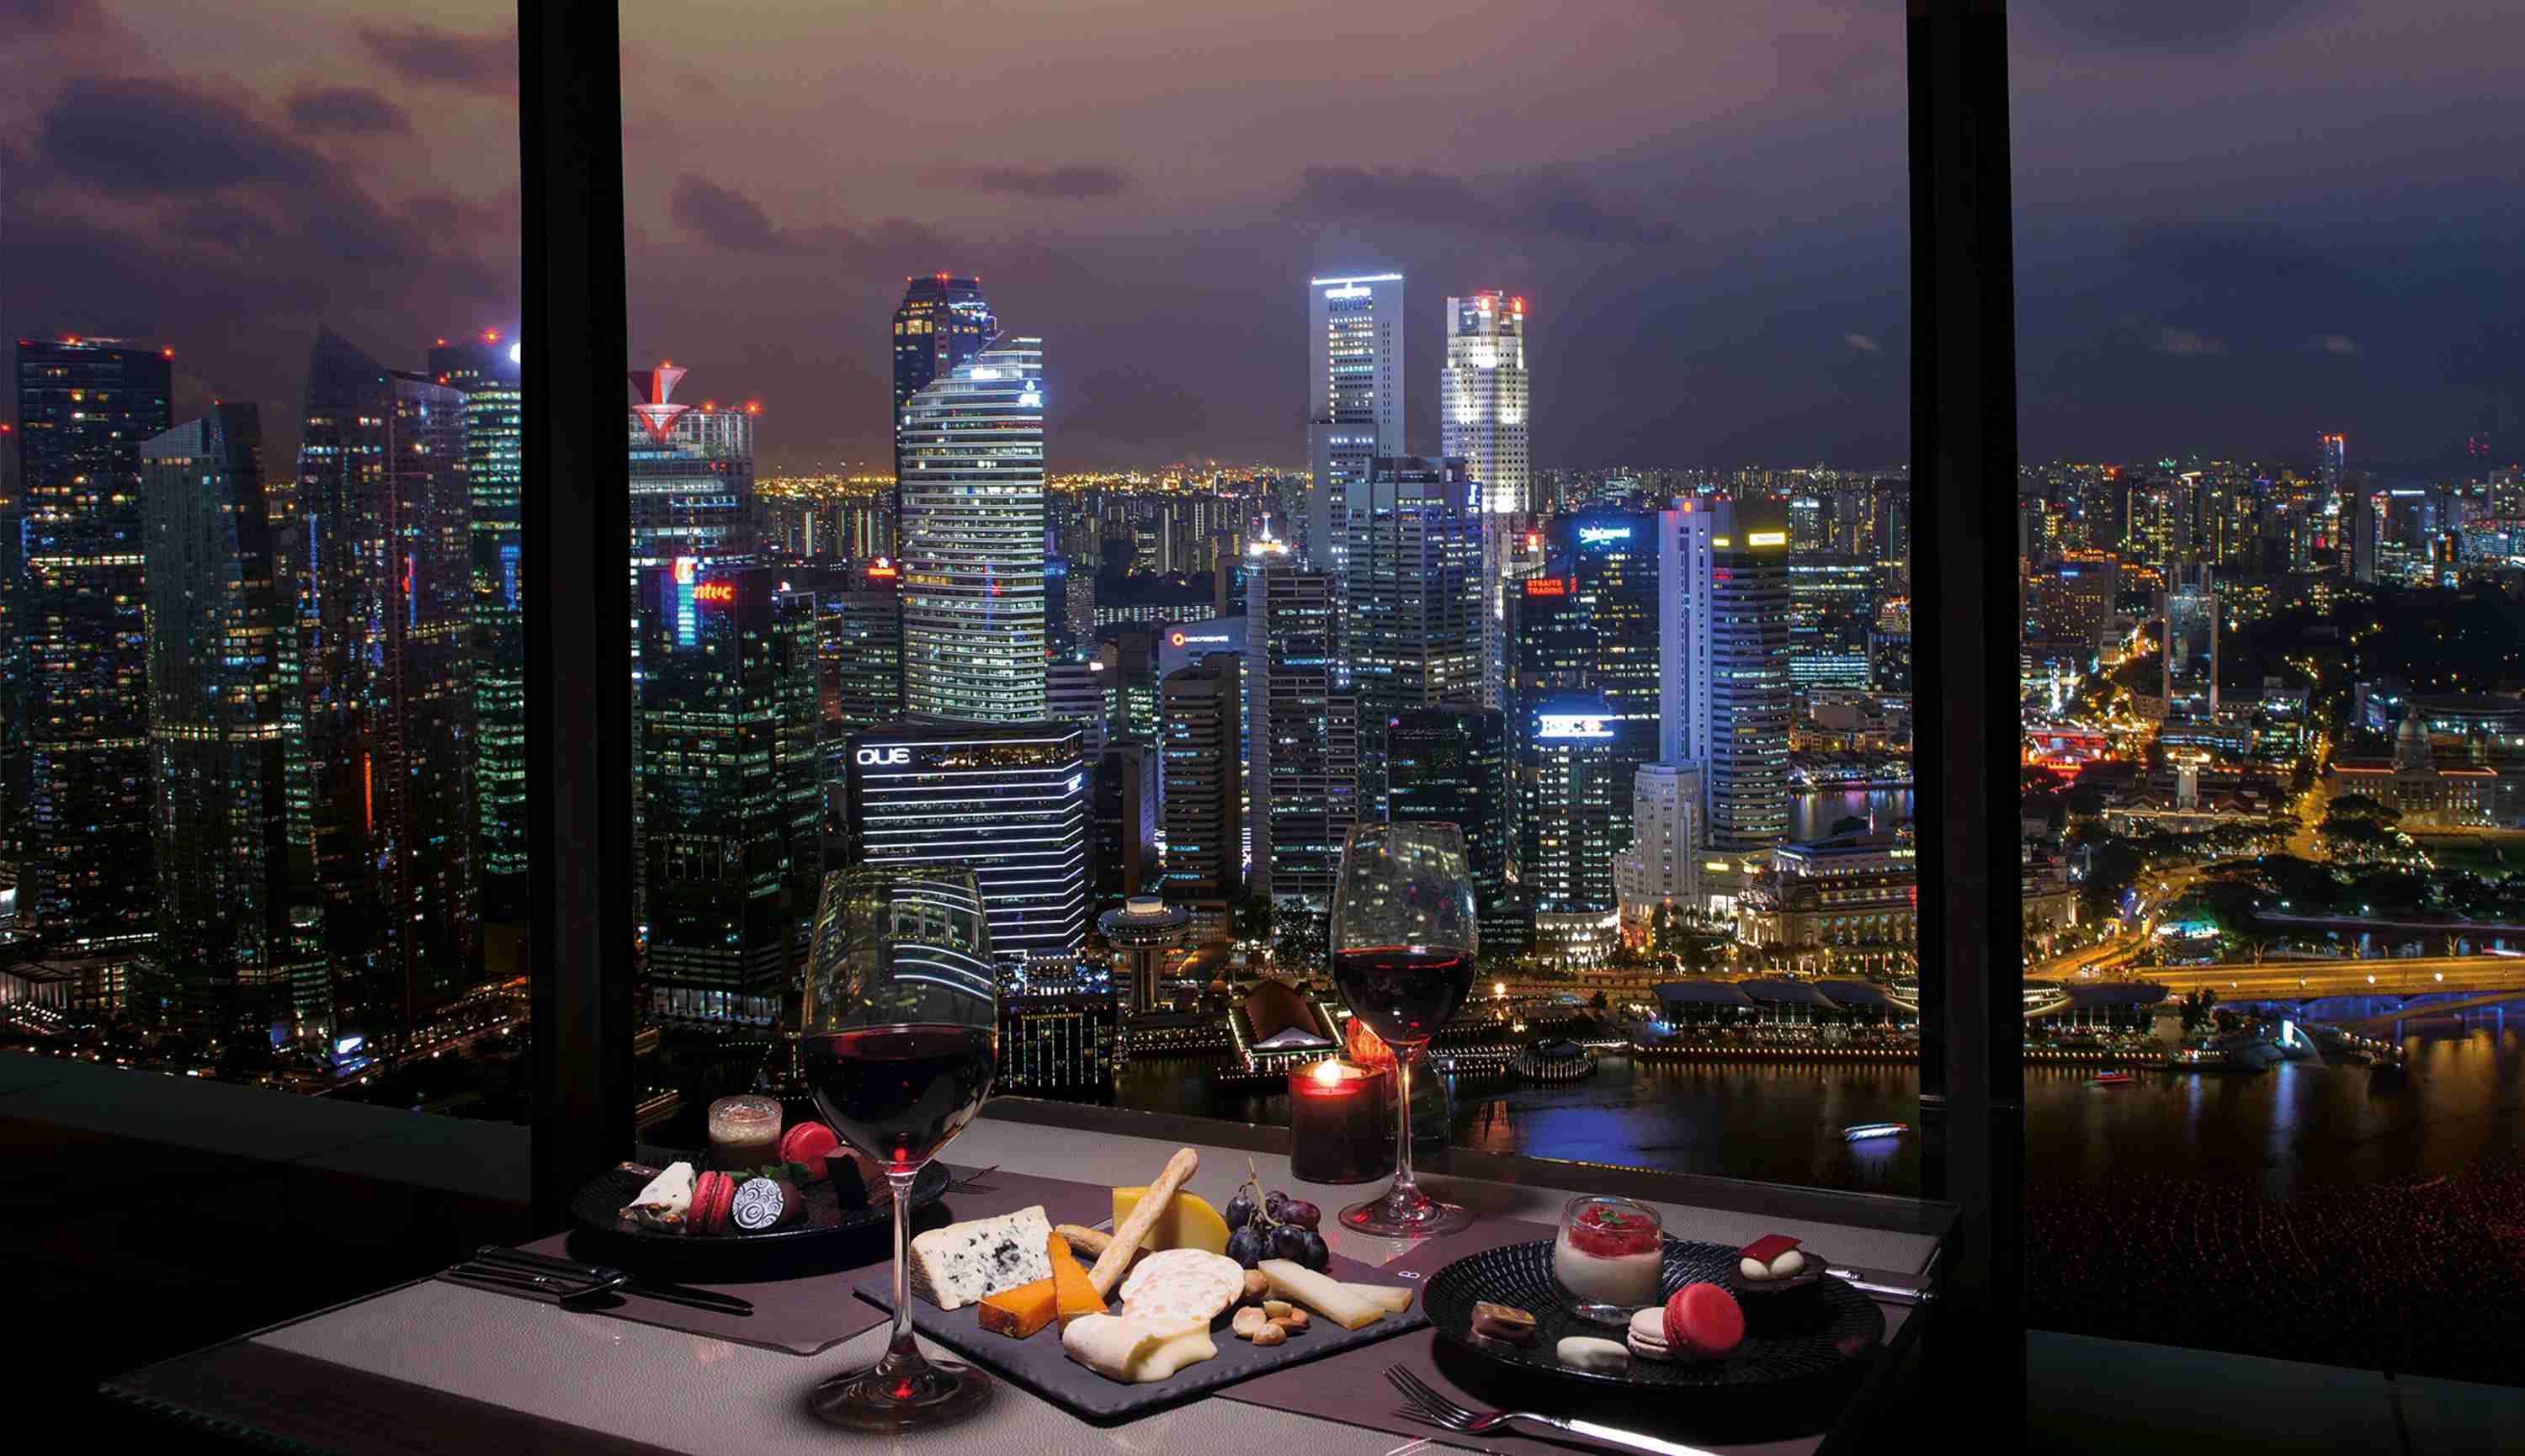 Club55 – Cheese and Chocolate buffet with Night View